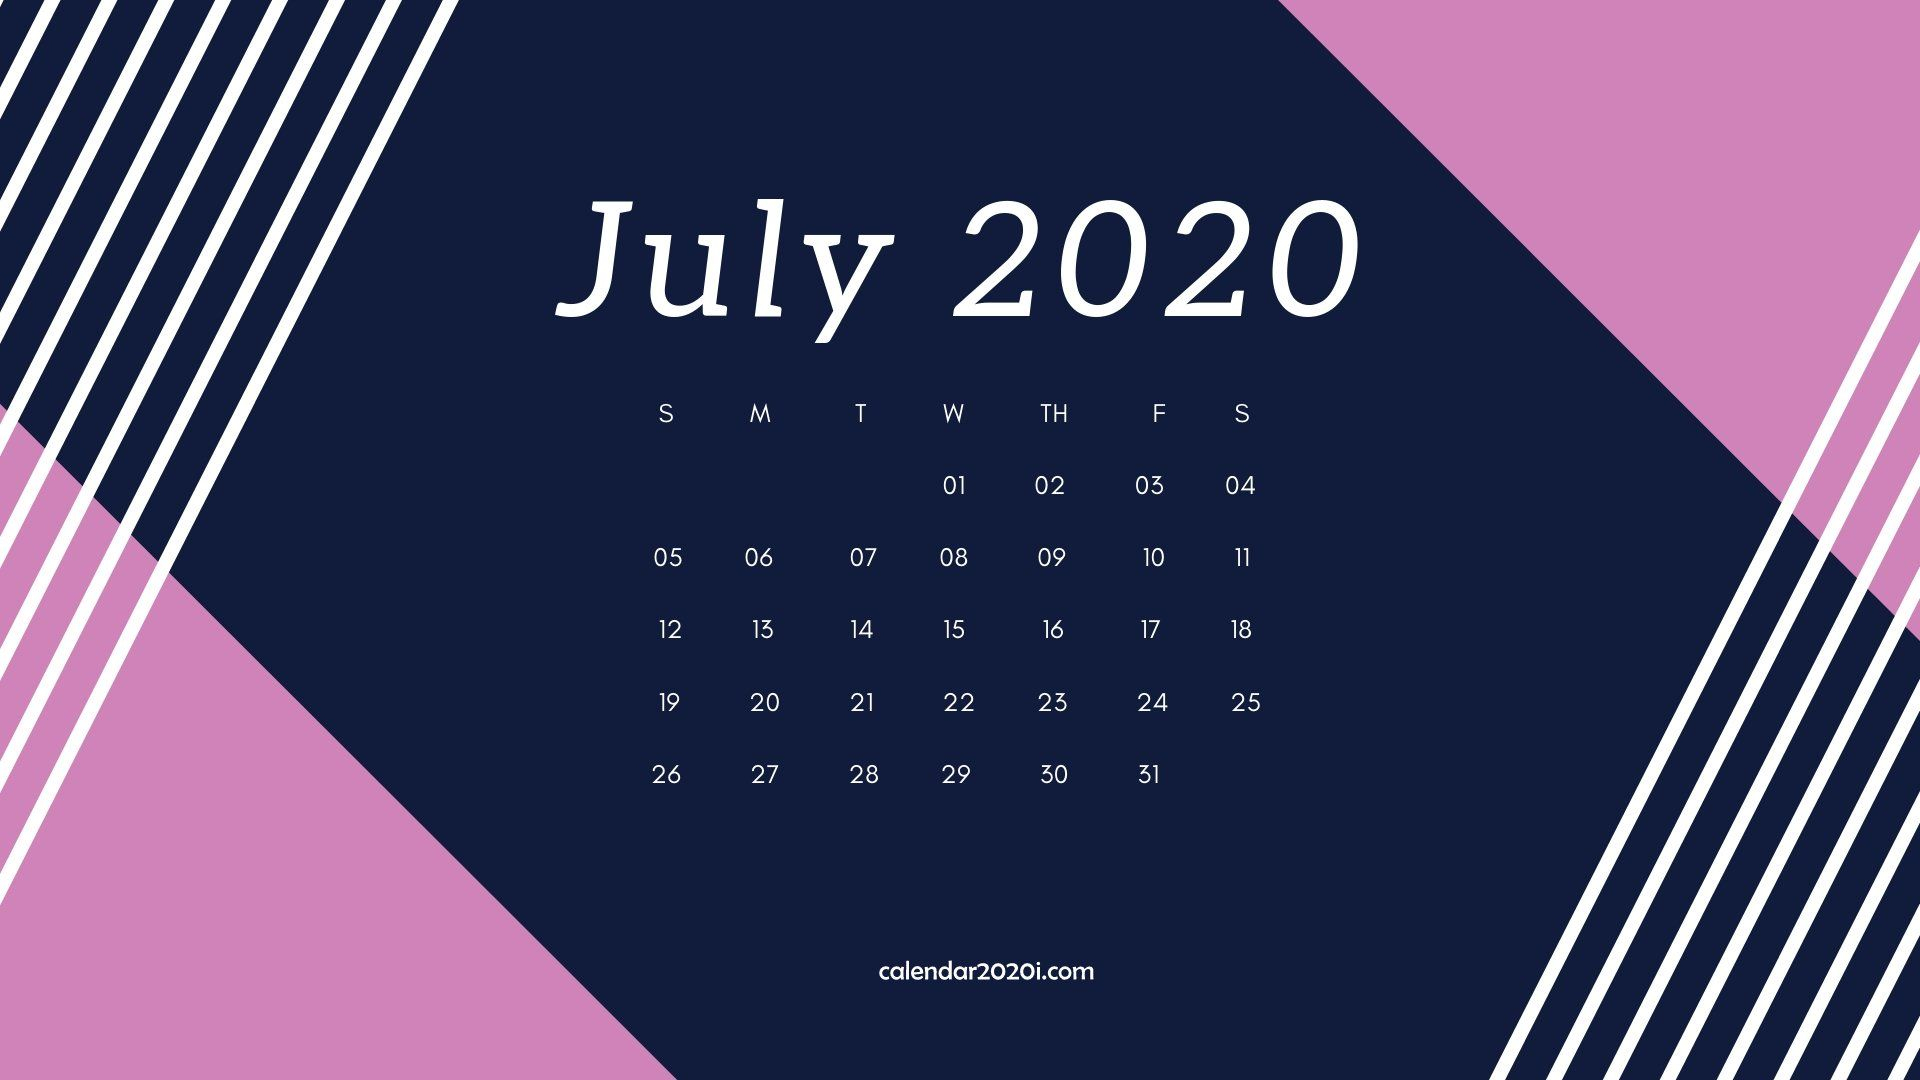 July 2020 Calendar Desktop Wallpaper | July Calendar